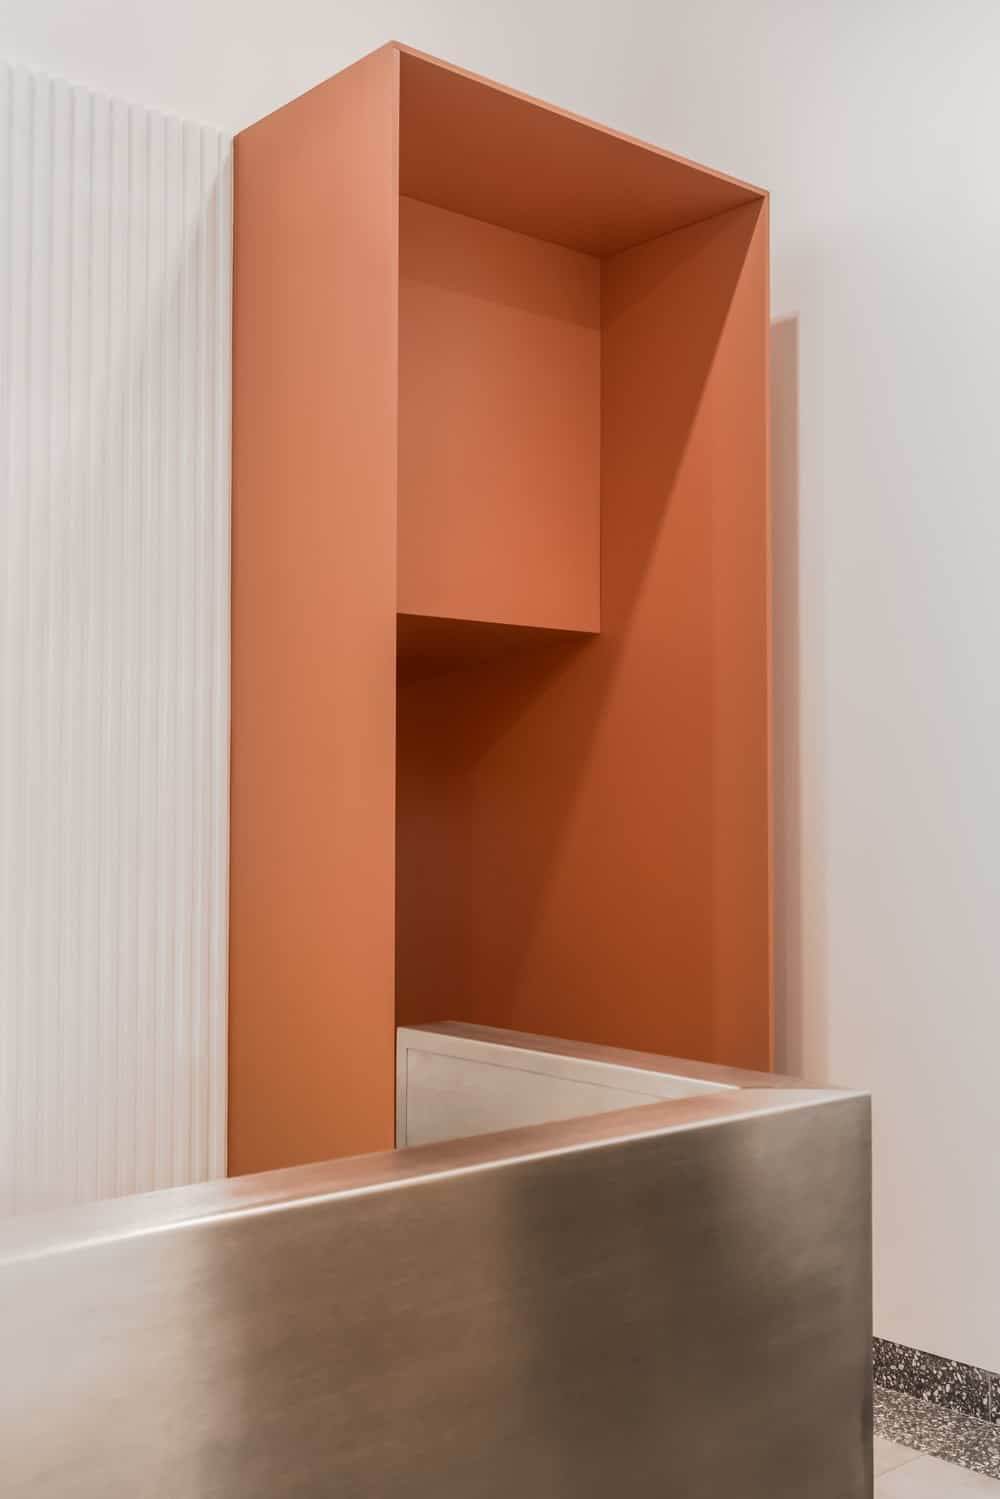 Here you can see the stainless steel railing wall that leads to the orange entryway of the staircase.